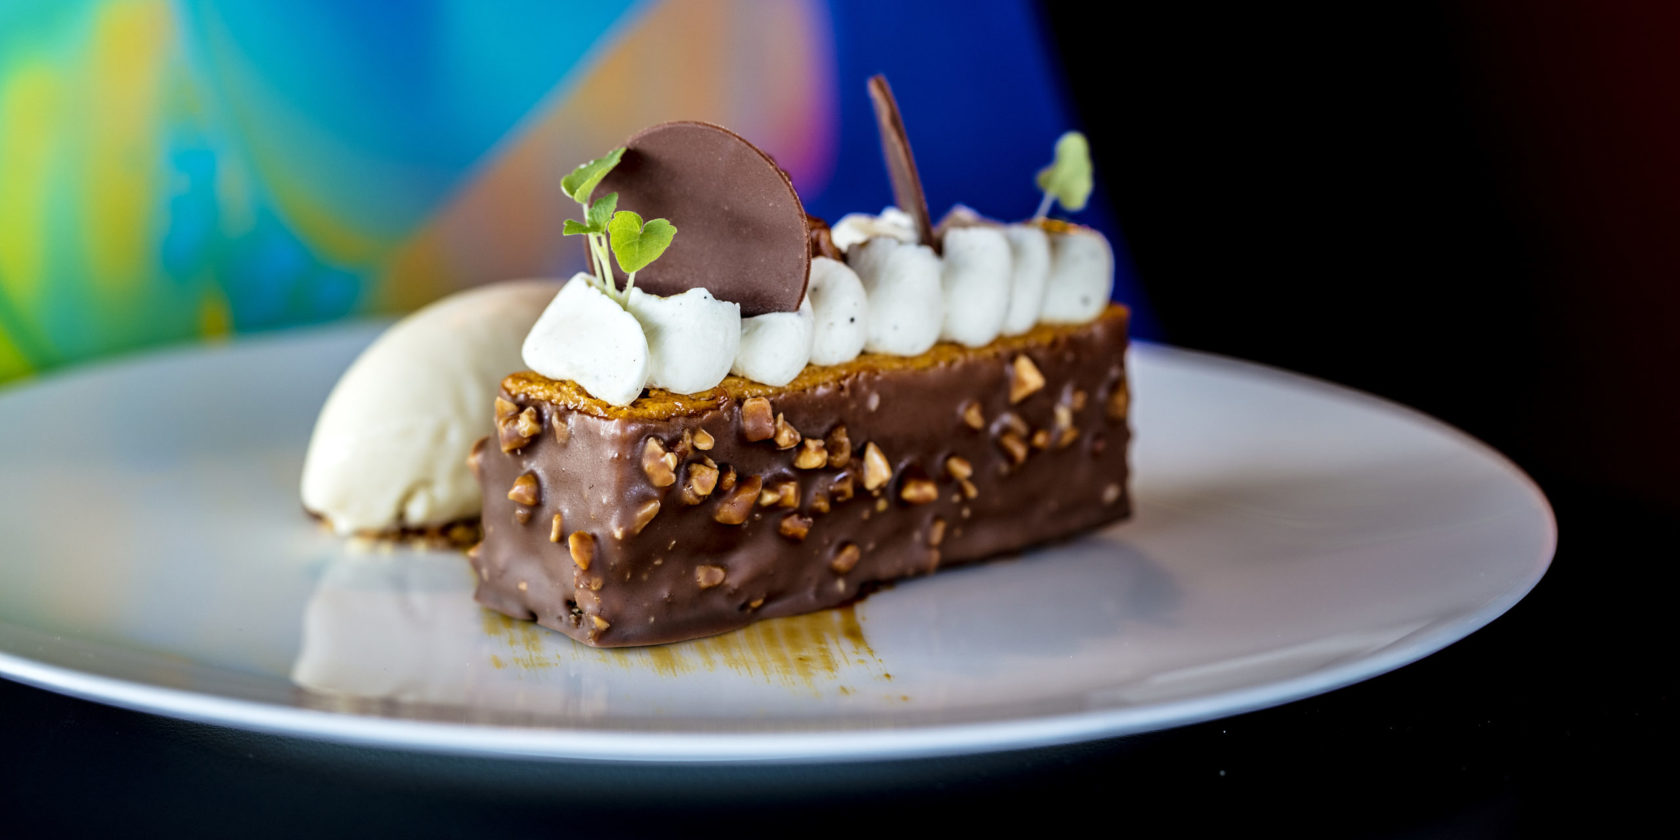 Hazelnut Bar with Ice Cream